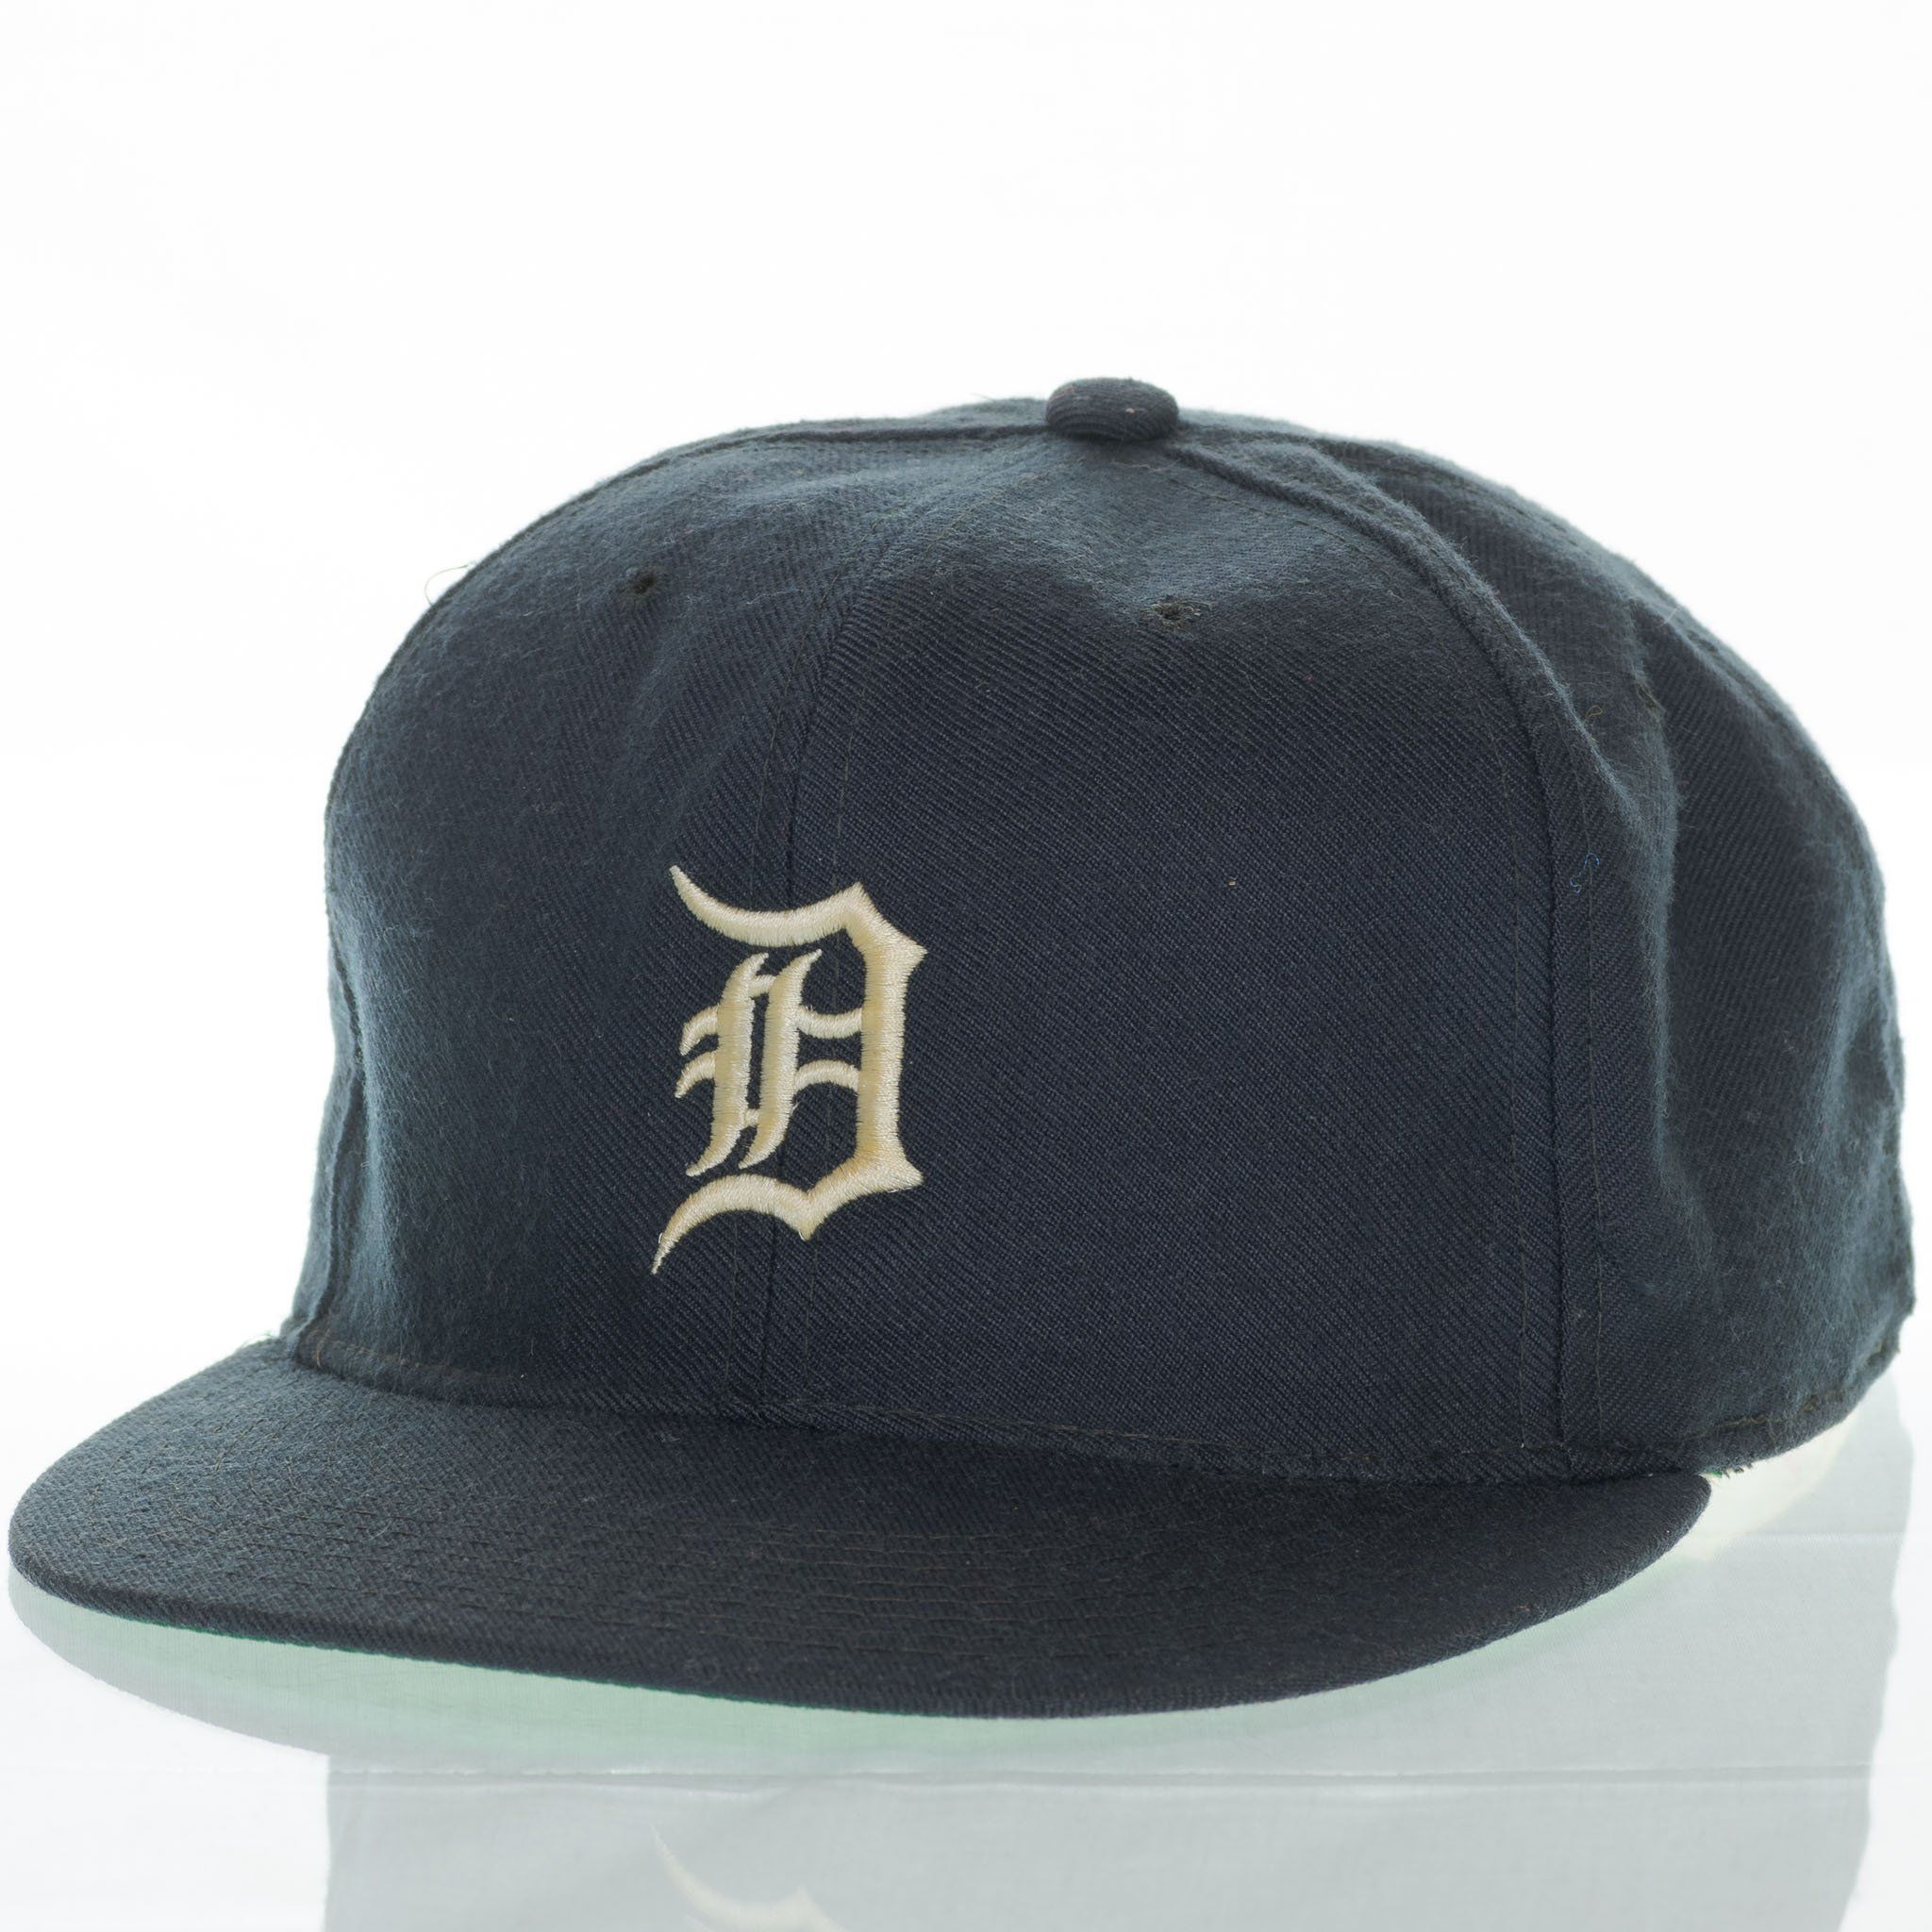 timeless design 04957 8d211 Detroit Tigers New Era Vintage Hat Fitted 7 1 4 Diamond Collection MLB Pro  Model